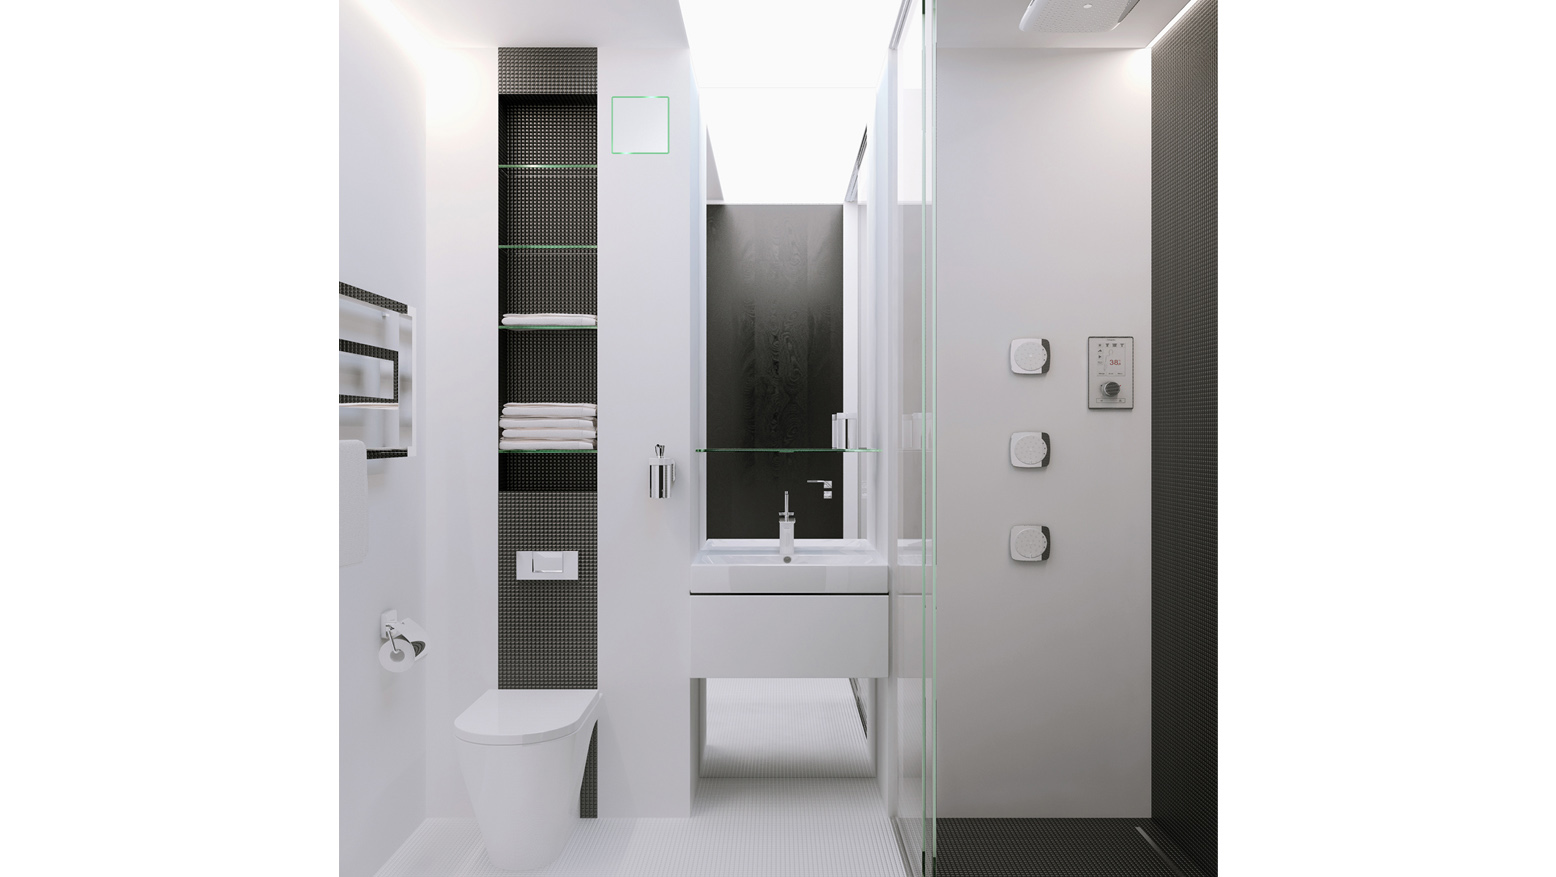 Modern bathroom exhaust venti invisible wall mounted fan - Invisible Fan Wall Mounted